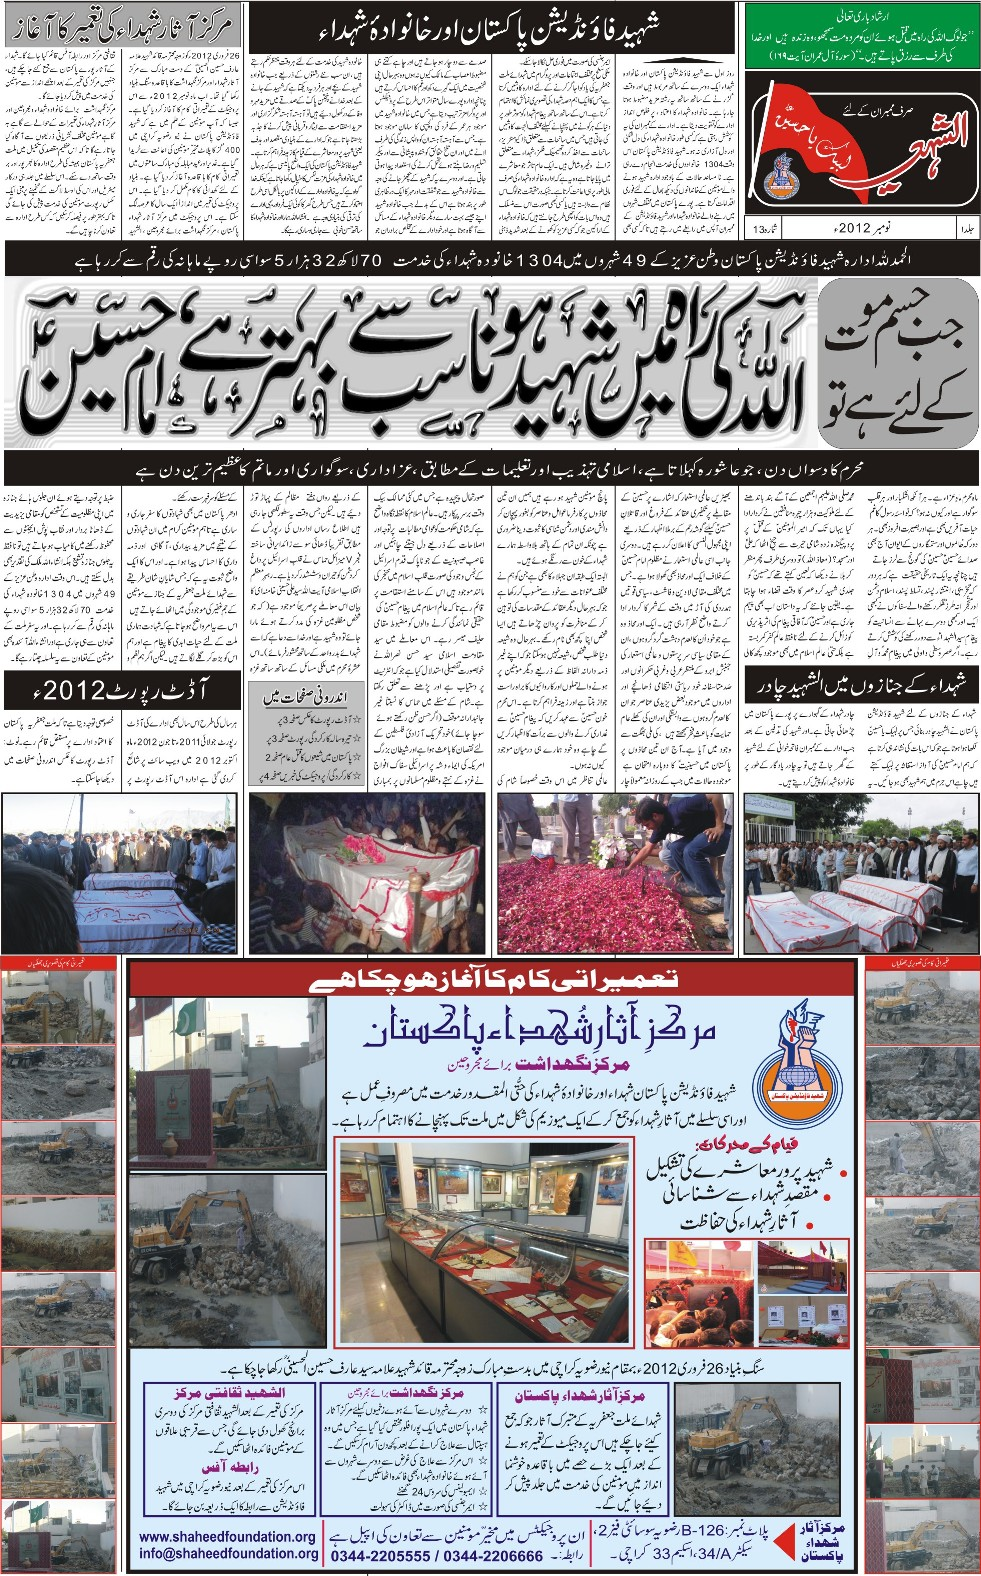 Al-Shaheed News Paper Nov 2012